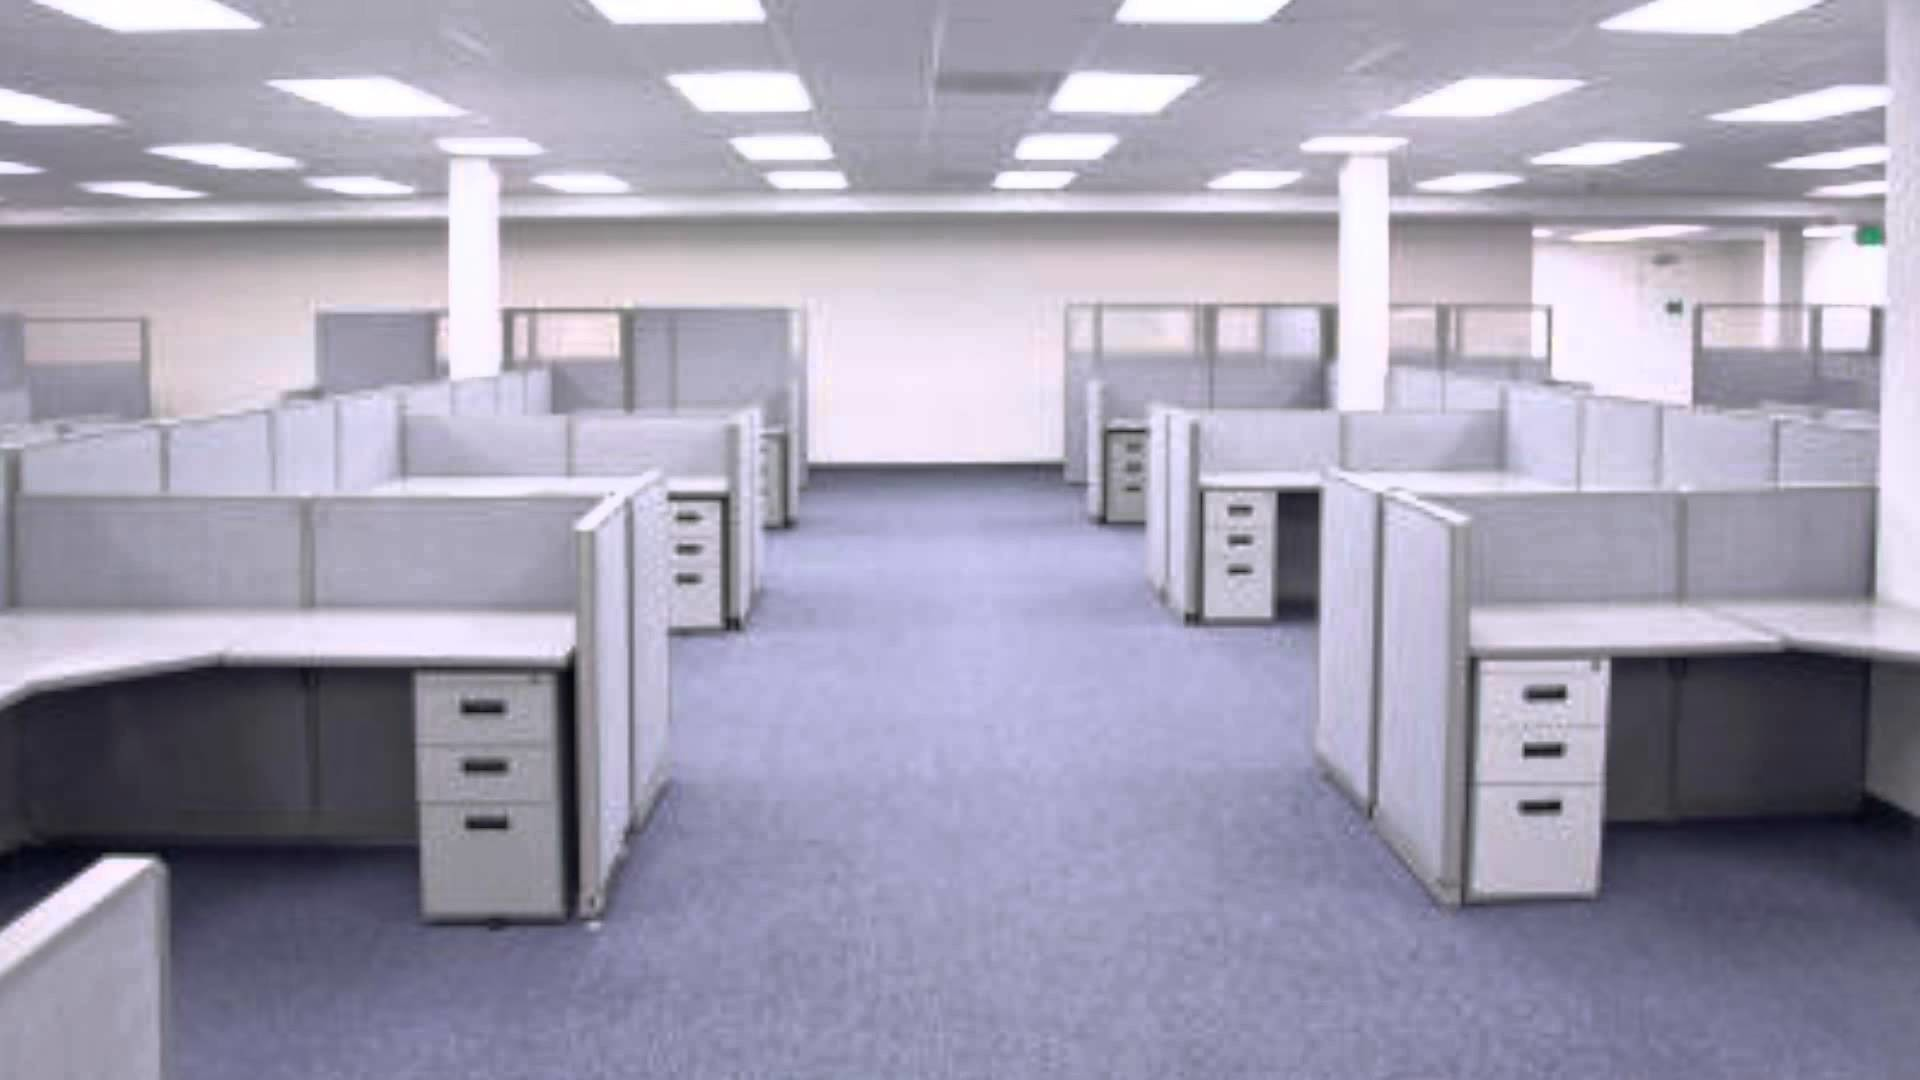 Room Tone Large Empty Office Sound FX